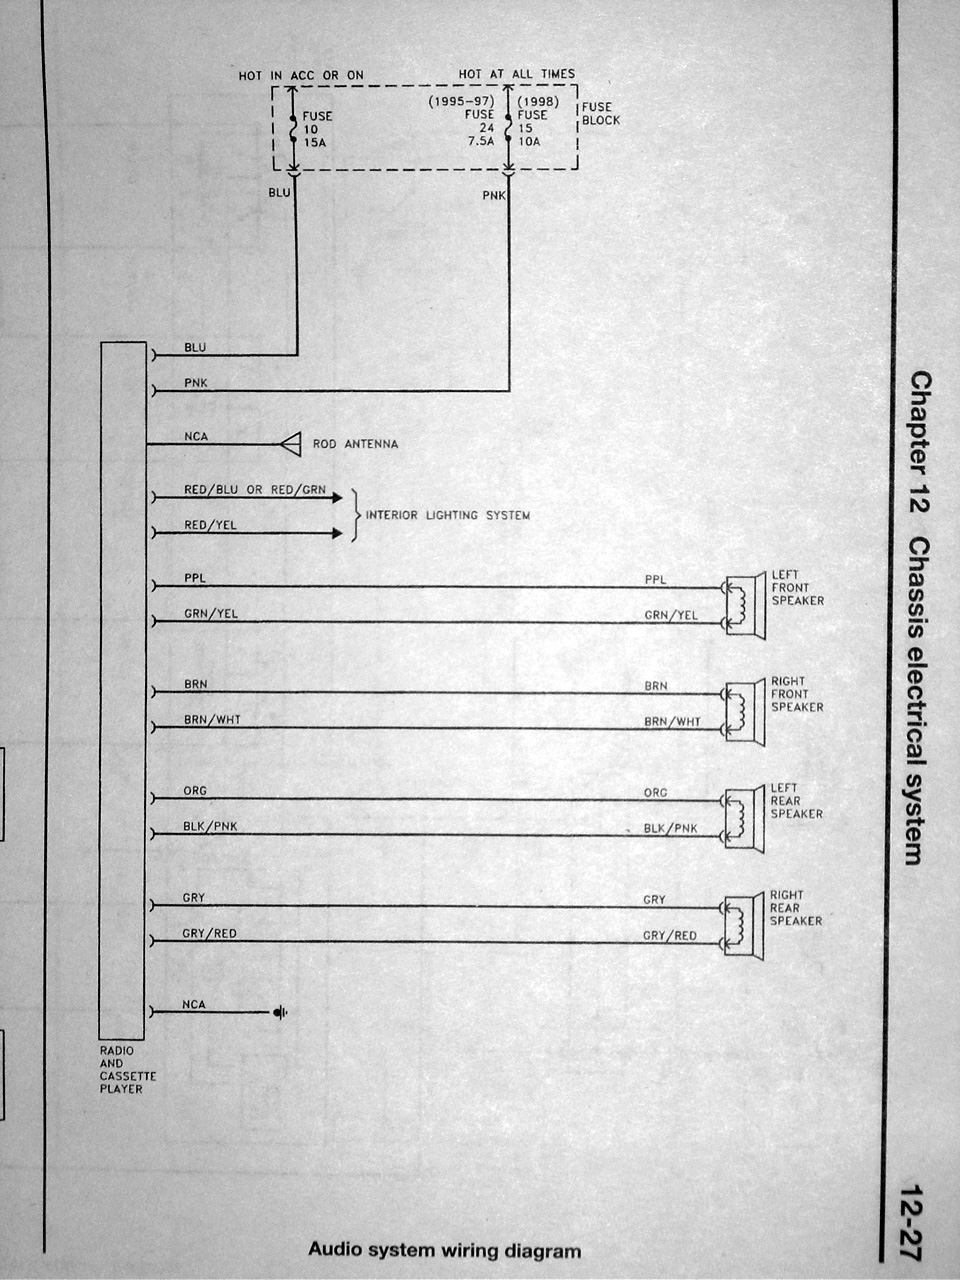 DSC01849?resize=665%2C887 2005 altima 2 5 s radio wiring illumination interior lighting 1998 nissan altima radio wiring diagram at gsmx.co